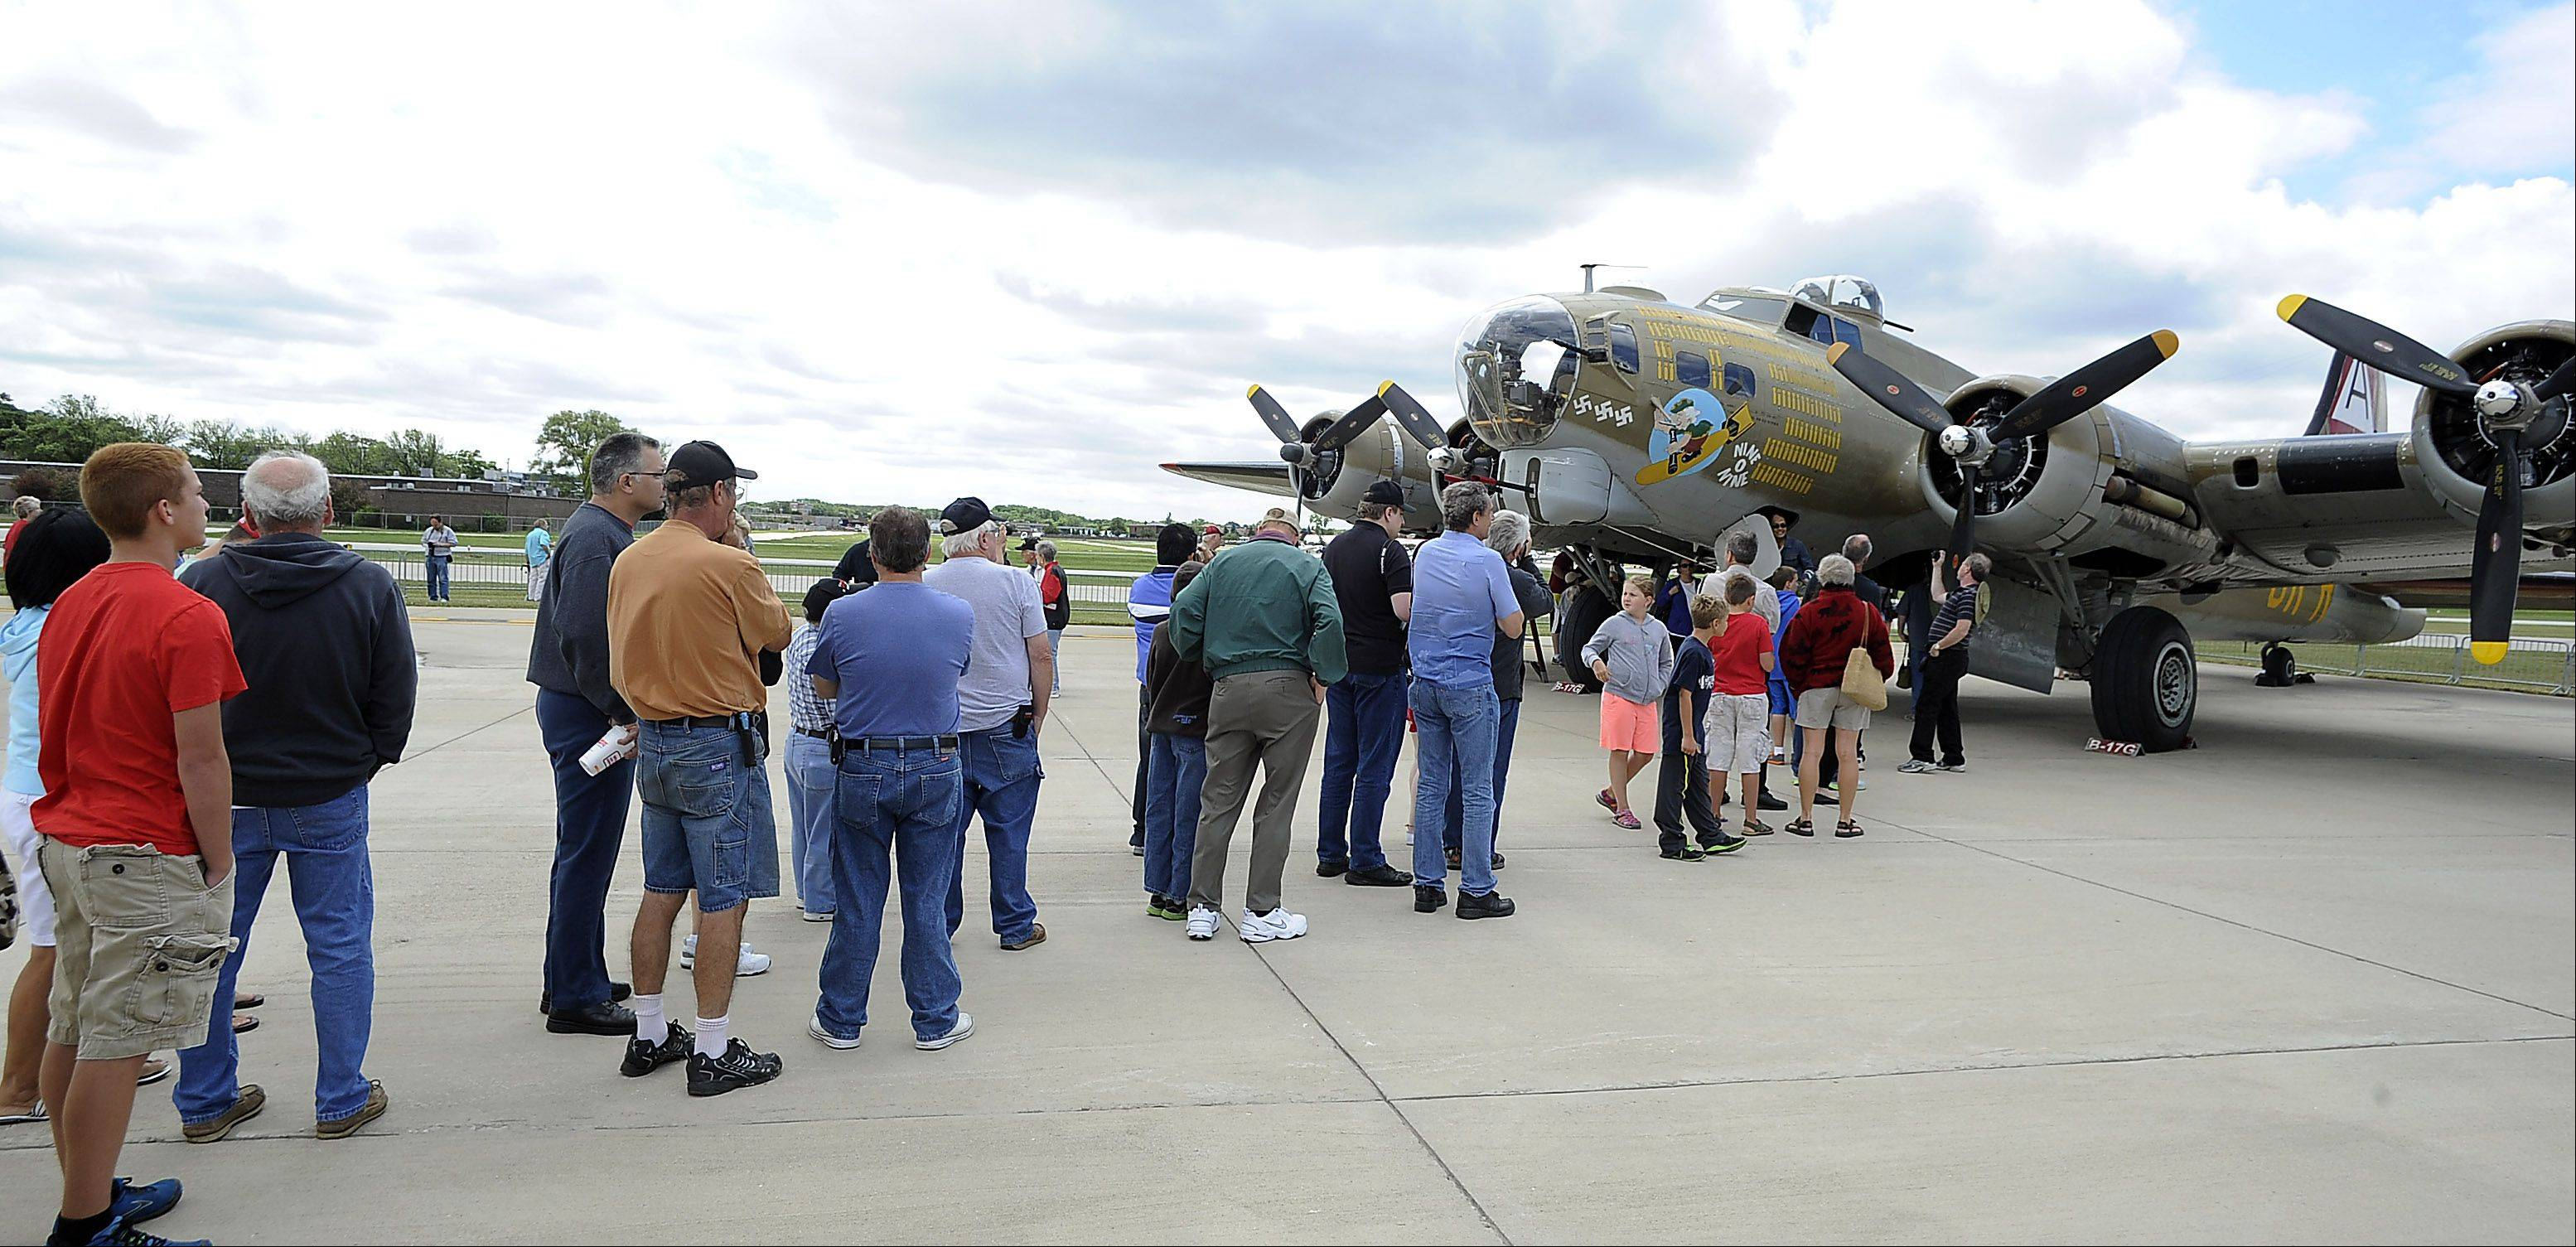 Long lines of people wait to check out the B-17 Flying Fortress which landed at Chicago Executive Airport on Saturday as part of the 2013 Wings of Freedom Tour.